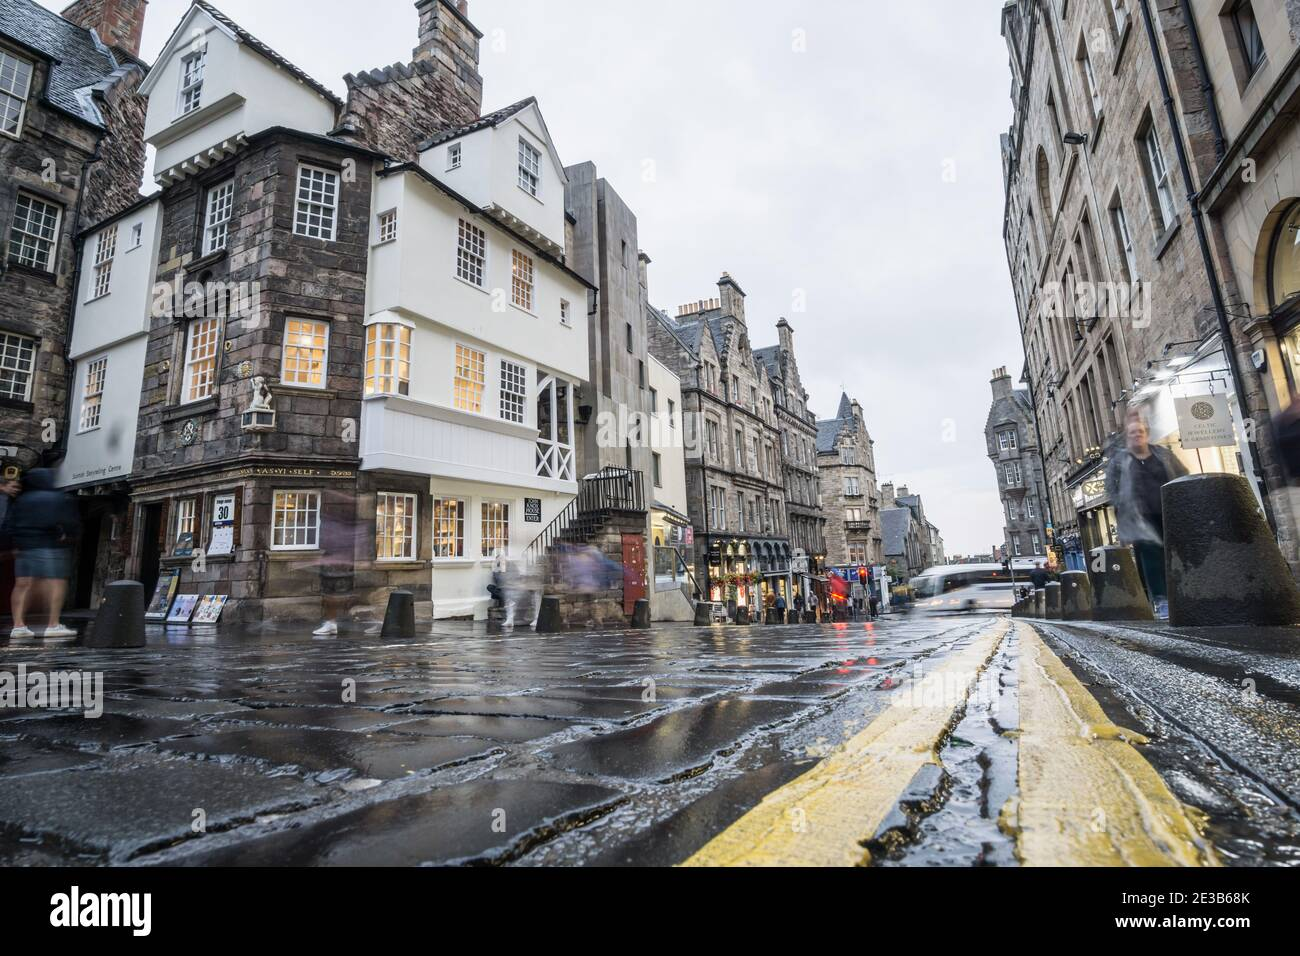 Ground level view looking down the Royal Mile Edinburgh, Scotland, showing John Knox House, on a rainy day Stock Photo